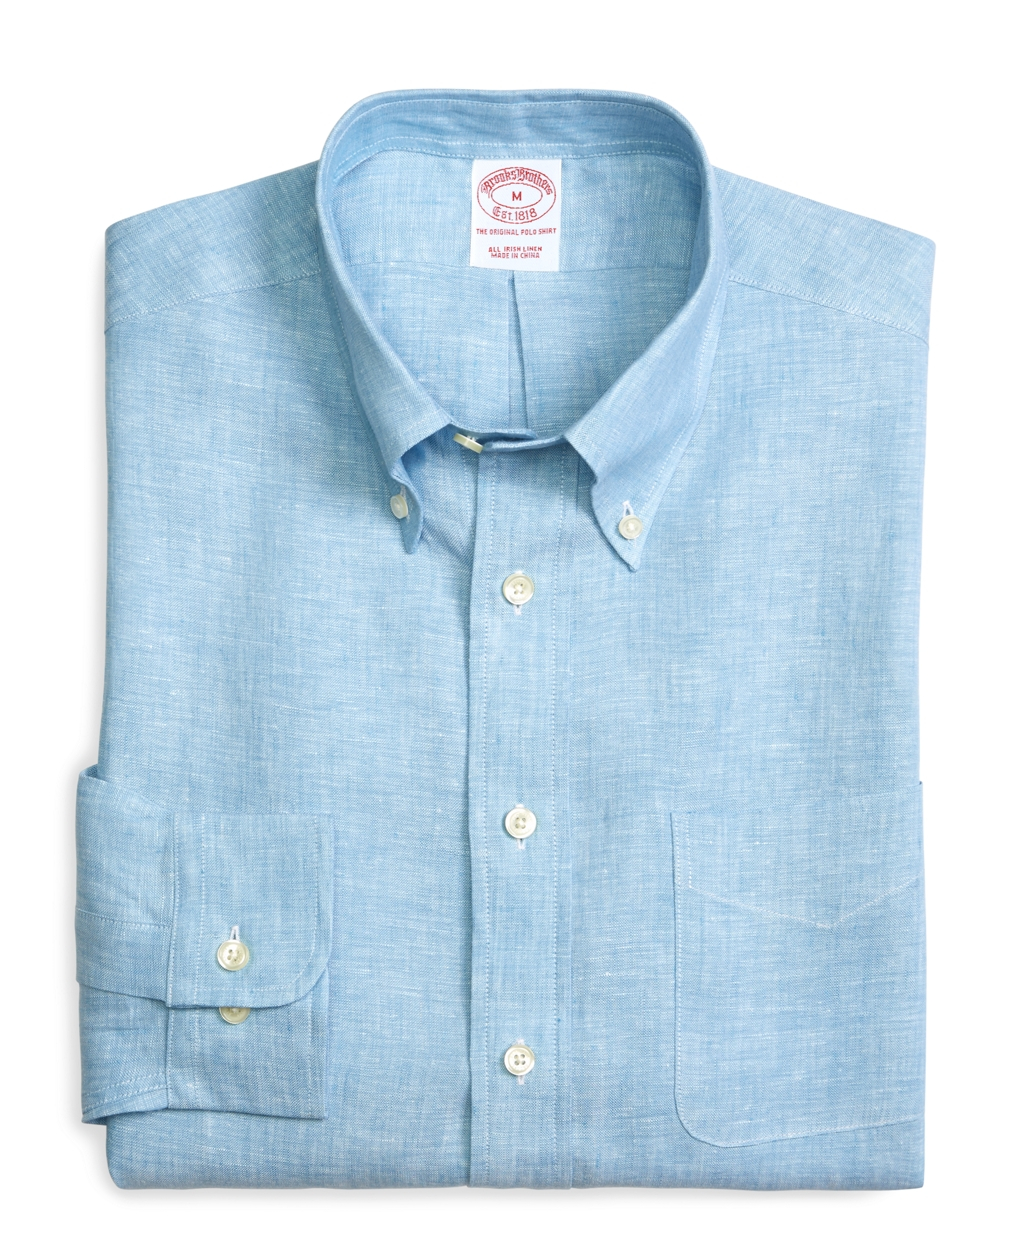 Brooks brothers slim fit solid linen sport shirt in blue for Brooks brothers dress shirt fit guide